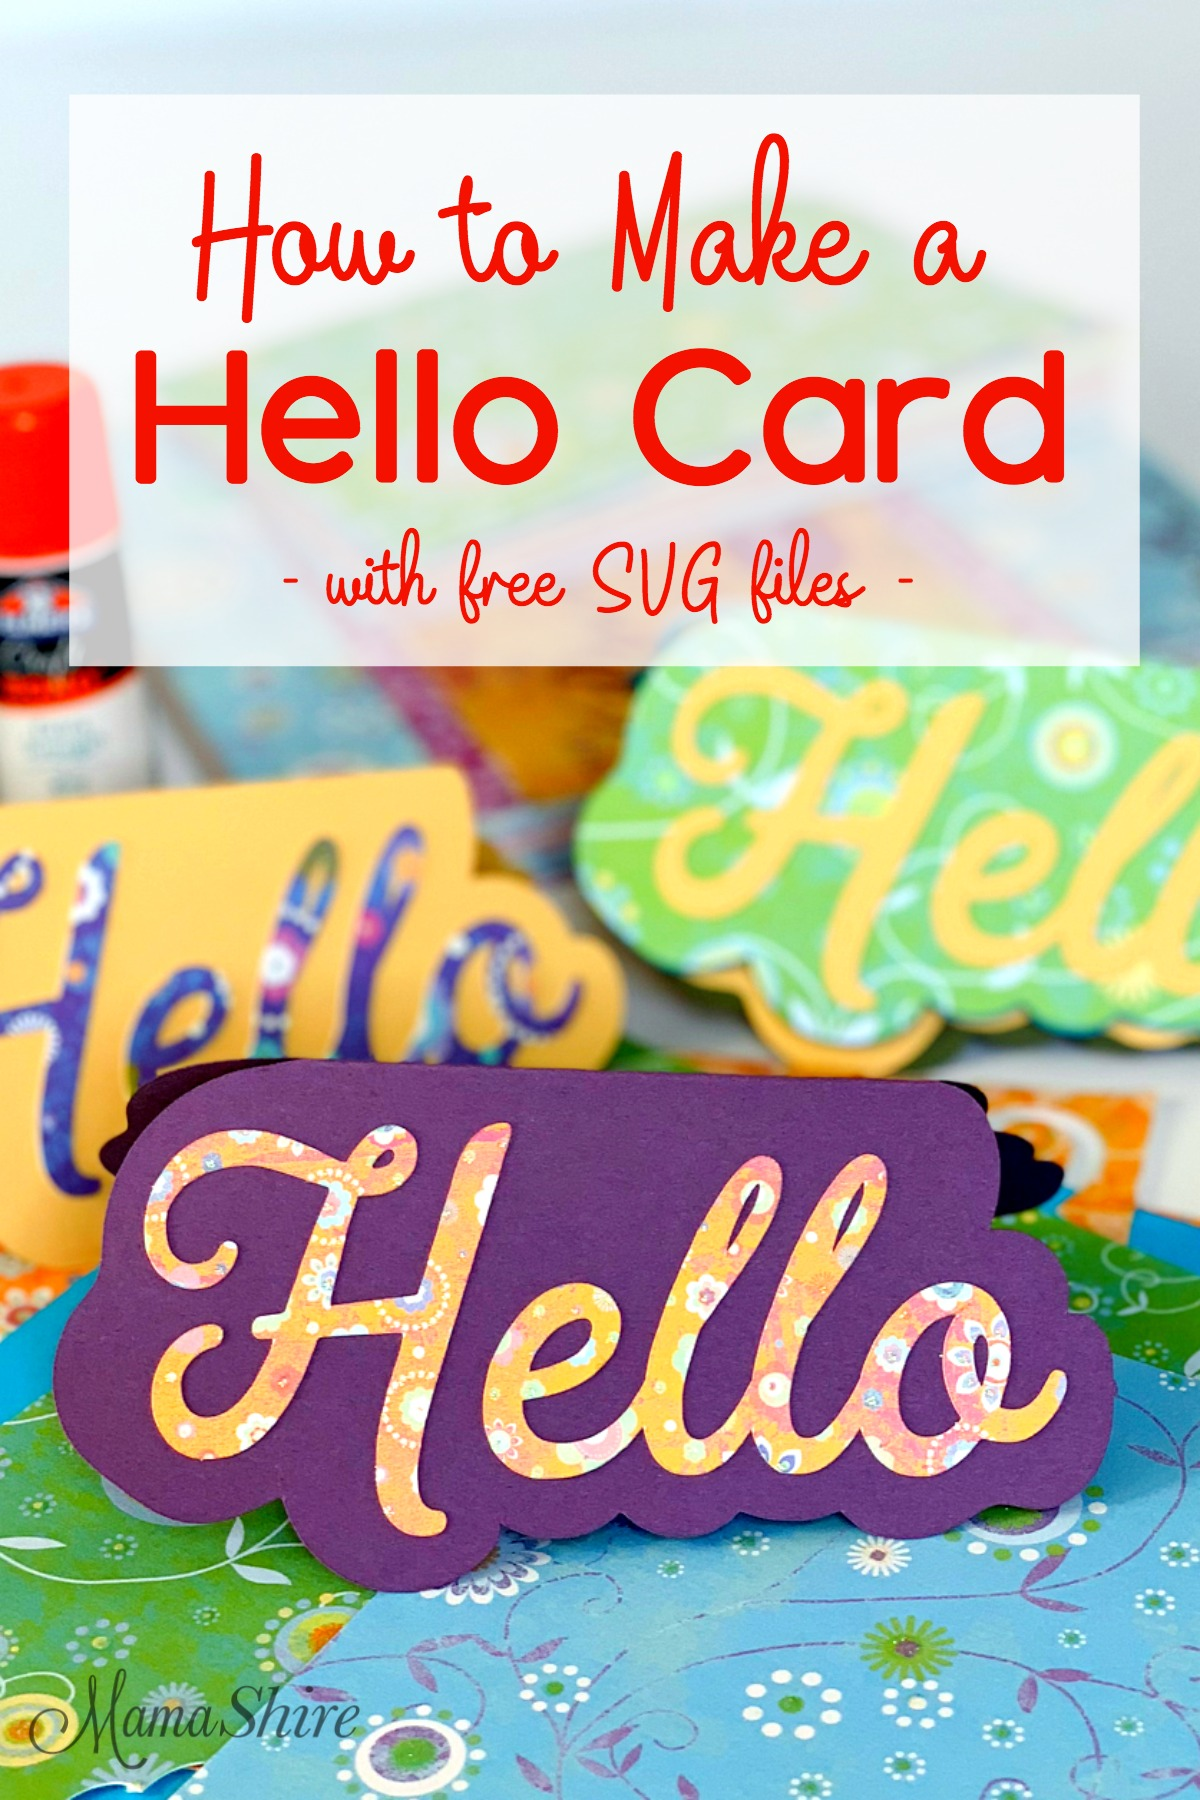 How to make a Hello Card with free SVG files